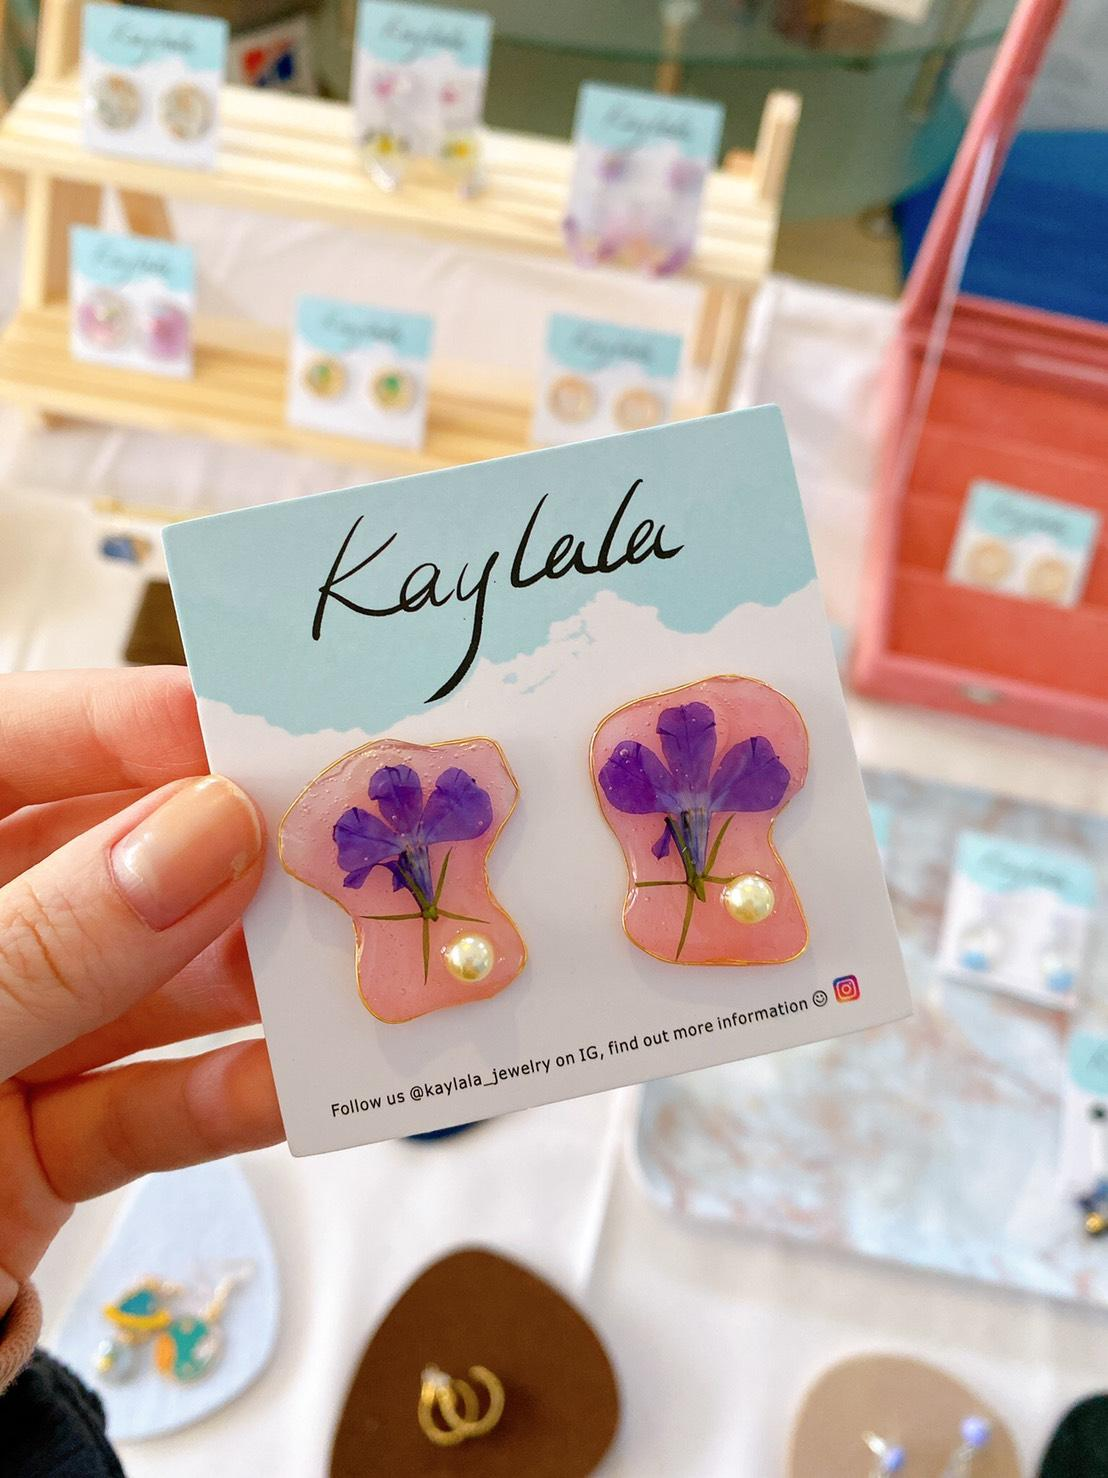 Handmade resin earrings using our own dried flowers